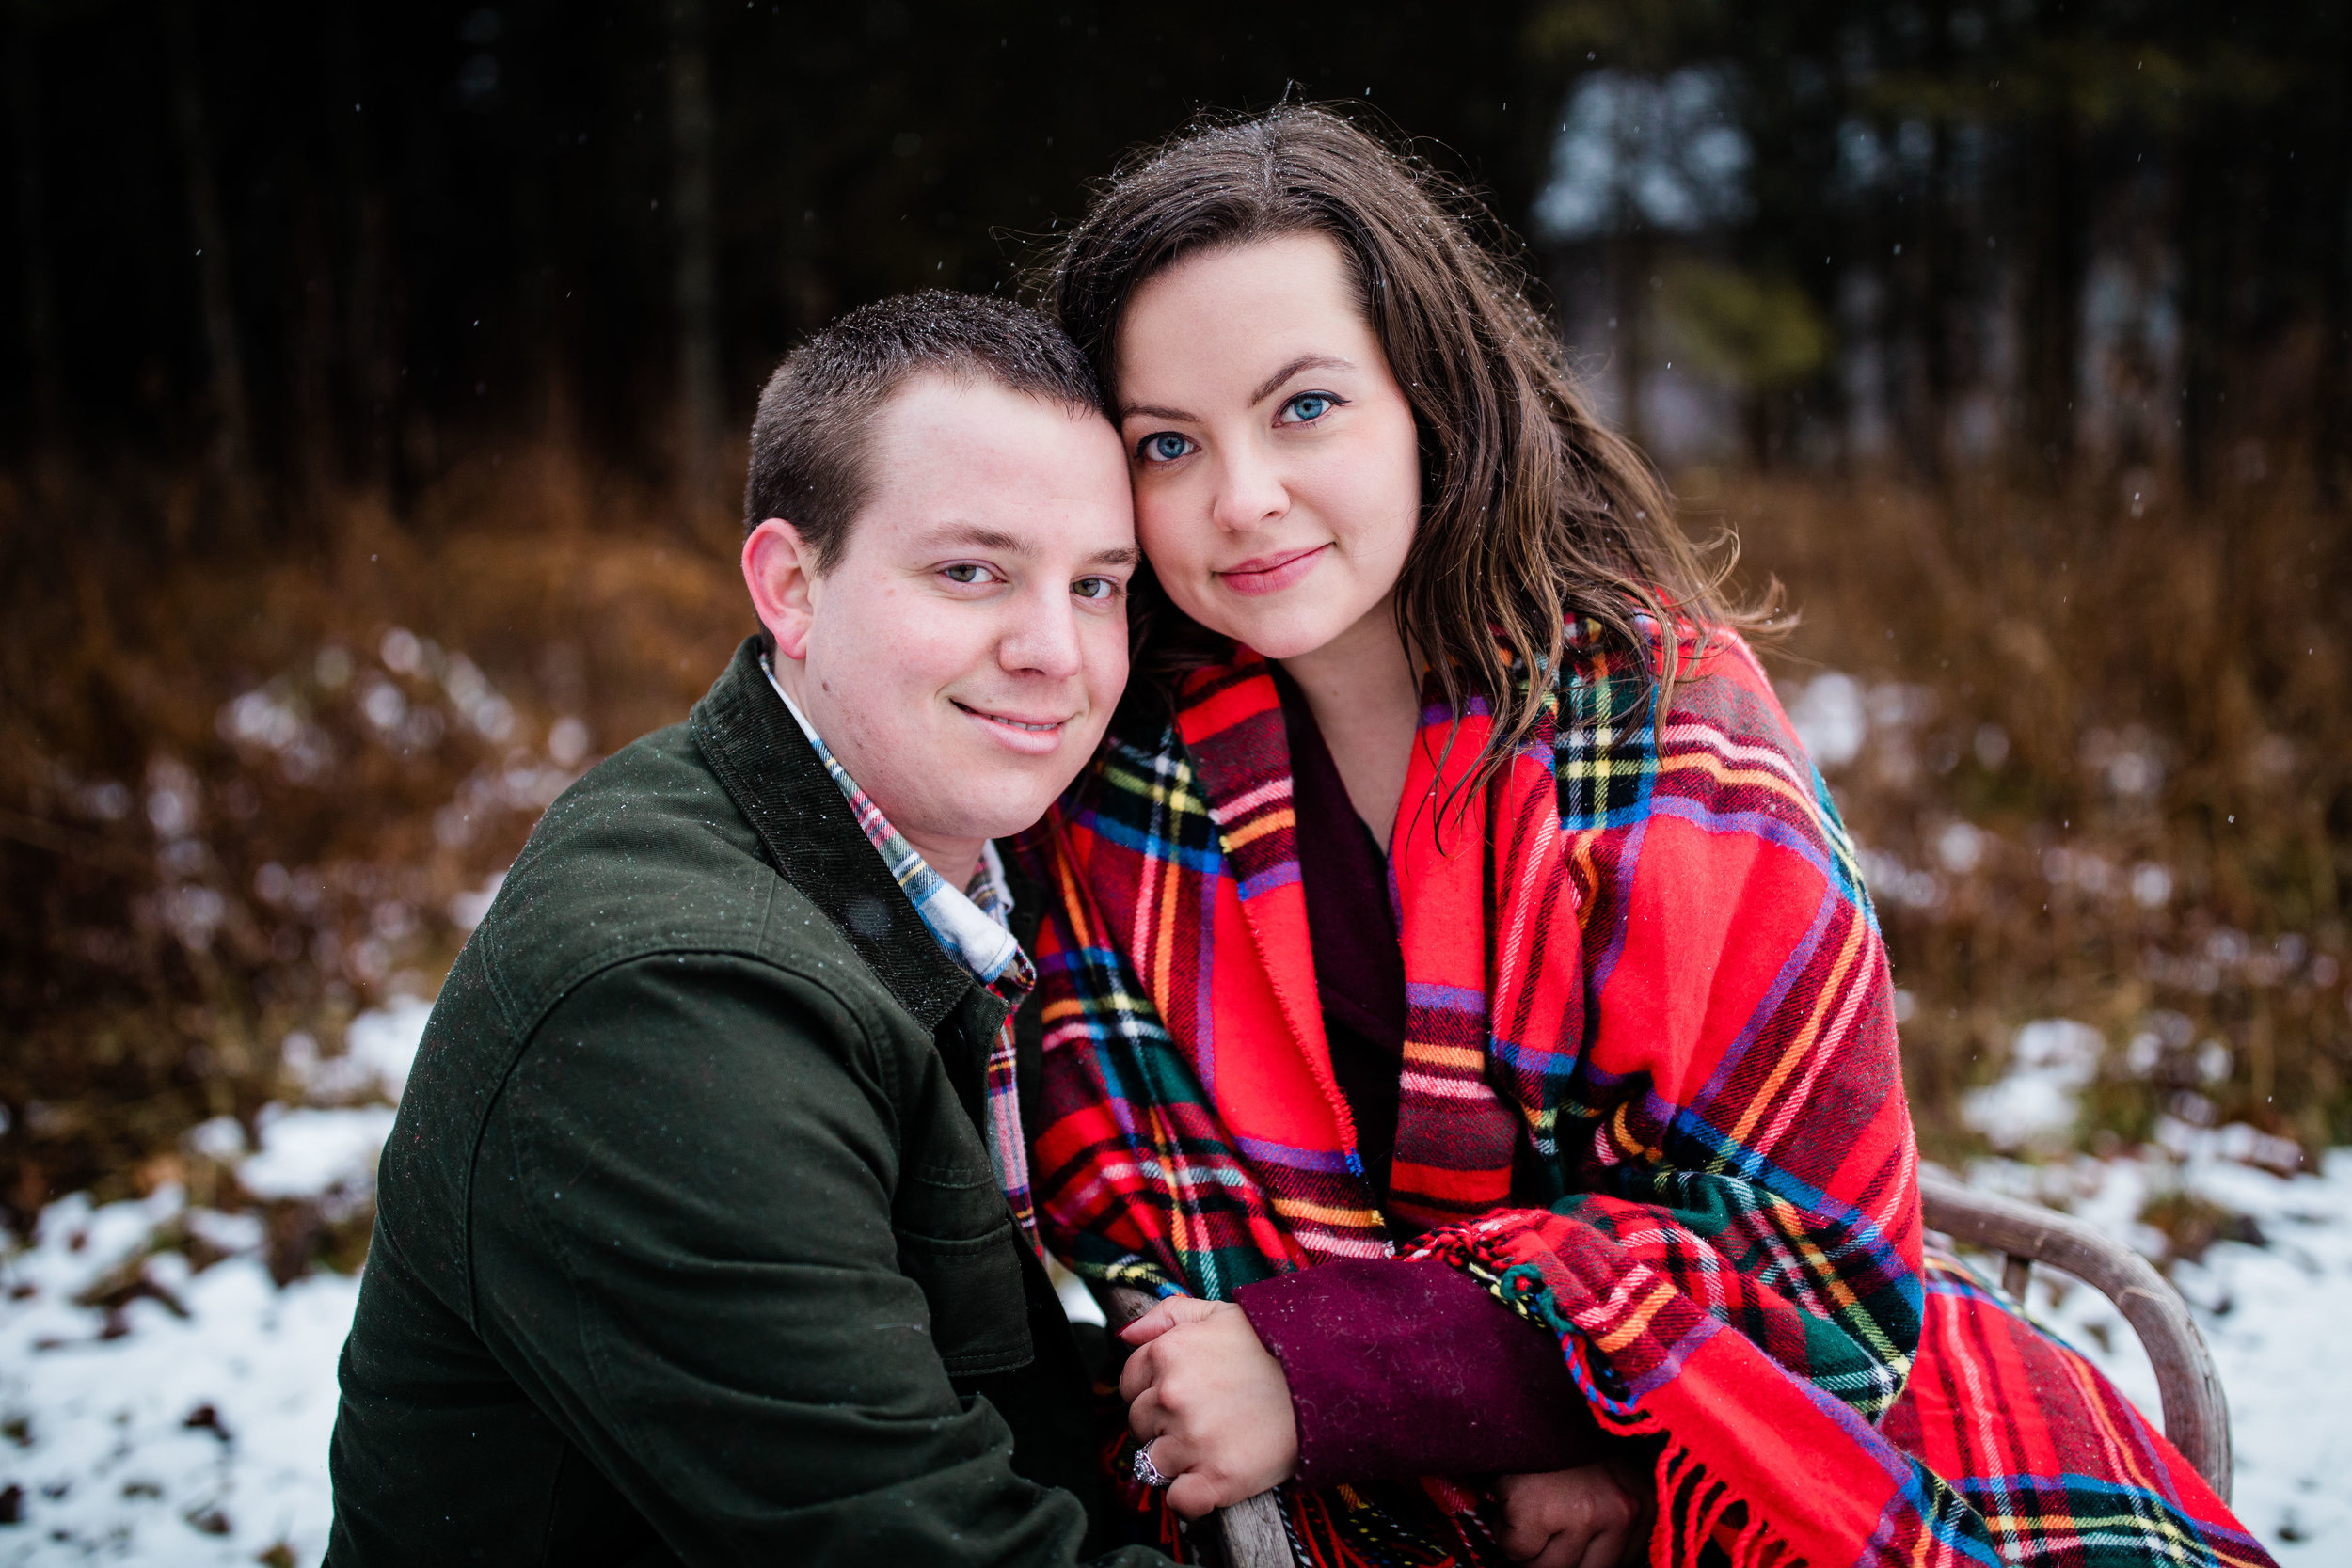 Libby and Alex Engagement Session-15.jpg